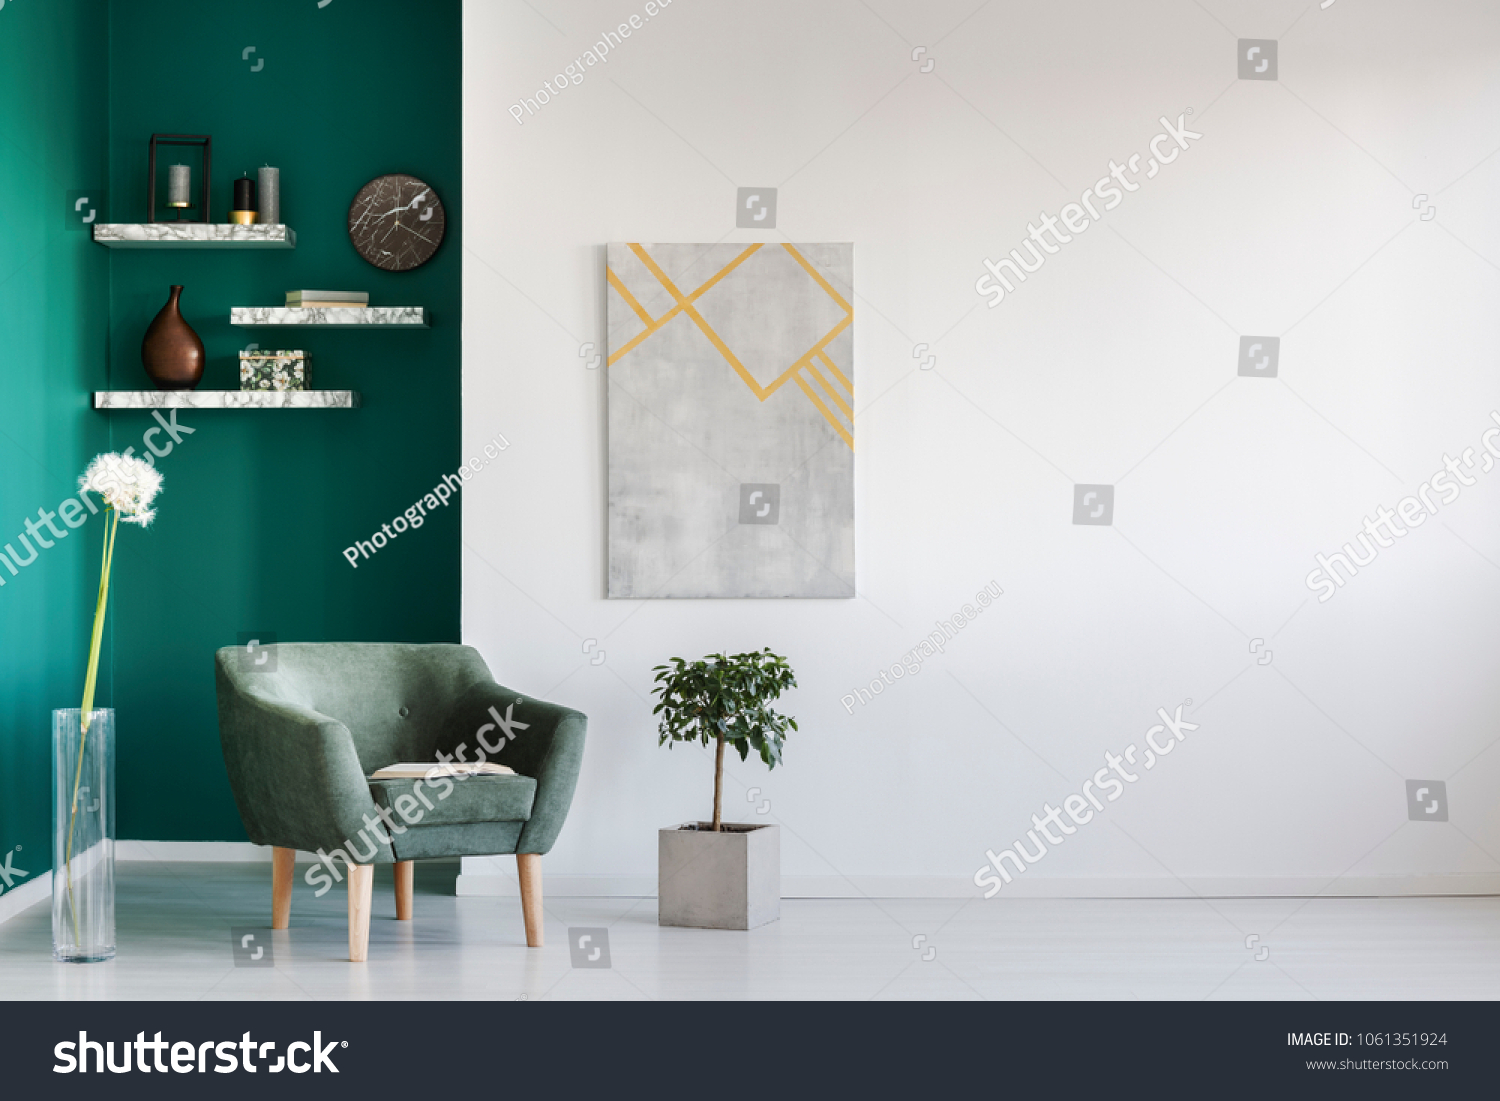 Green armchair between dandelion and plant in living room interior with copy space and grey painting #1061351924